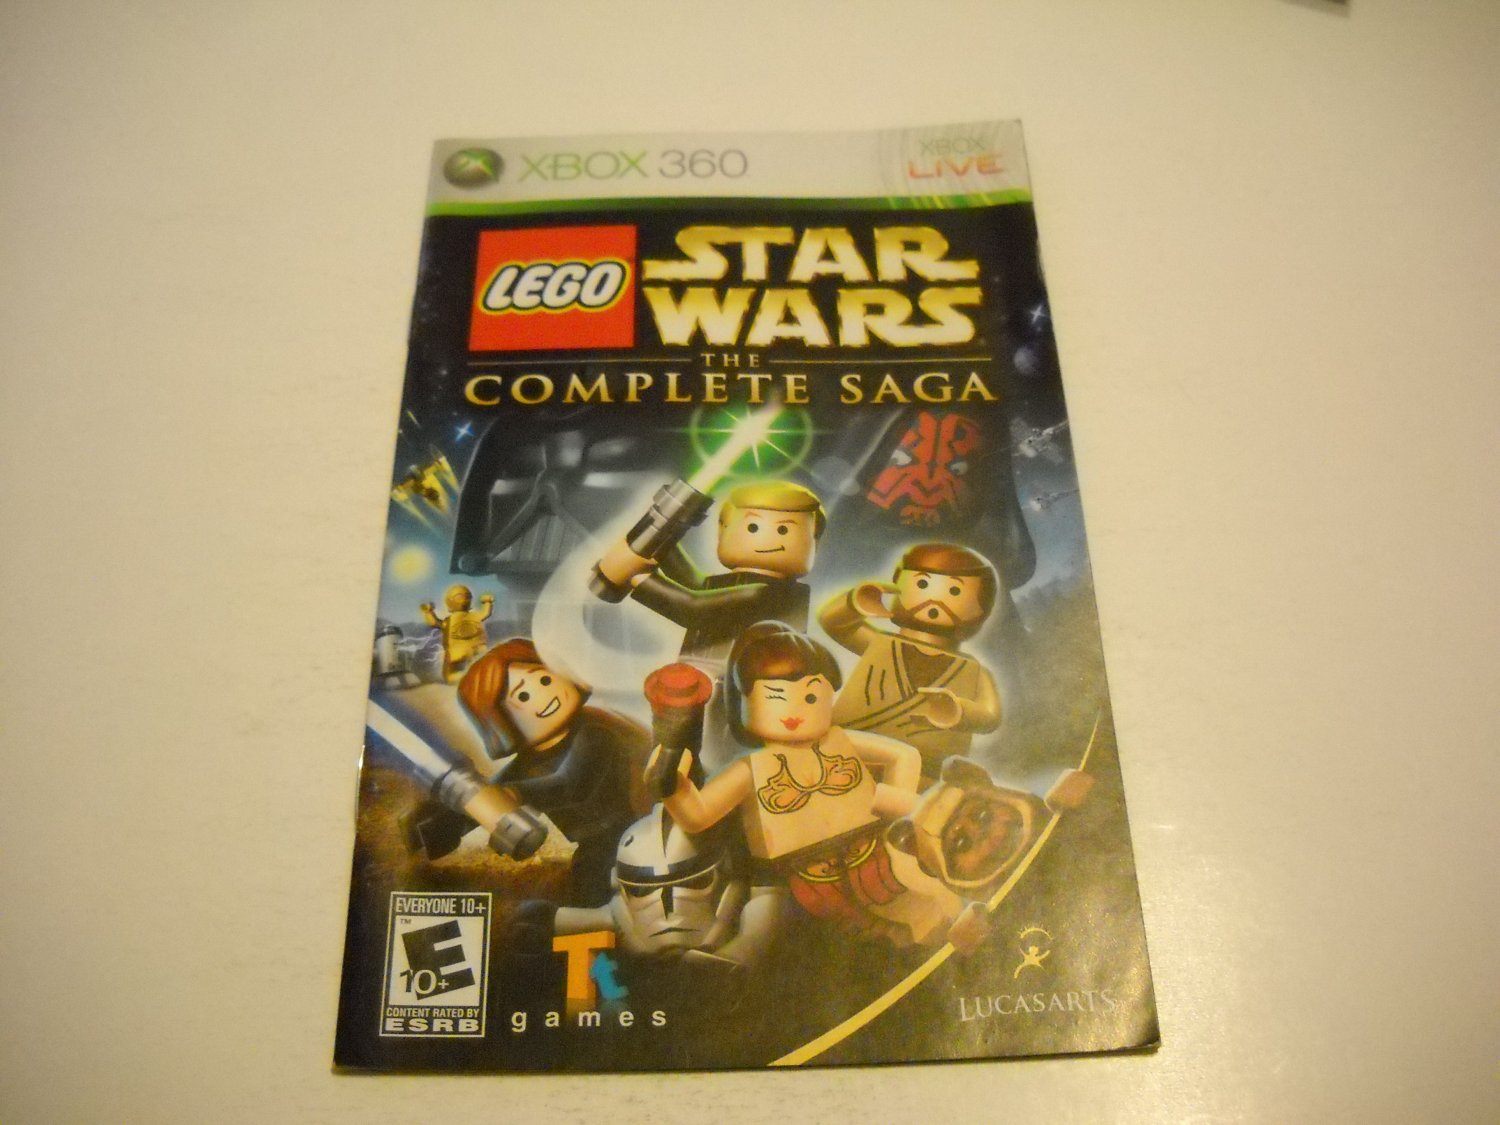 Manual ONLY ~  for Lego Star Wars The Complete Saga   - Xbox 360 Instruction Booklet